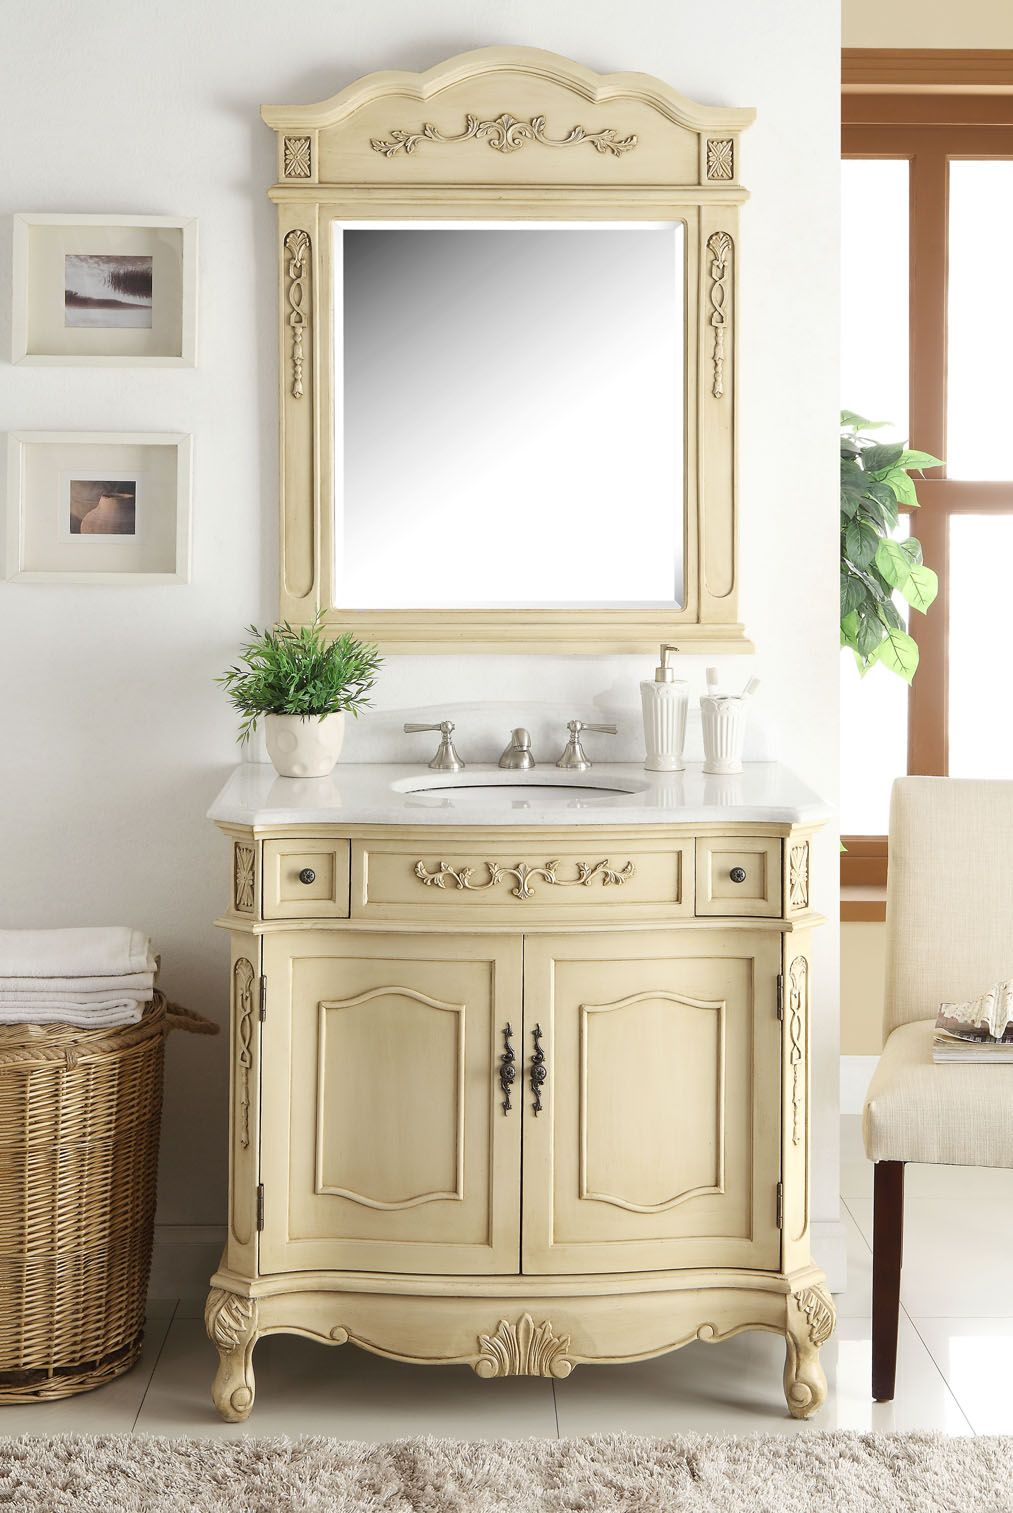 Website Photo Gallery Examples Classsic Style Pastel Beige Fairmont Bathroom Sink Vanity u Mirror Set u Dimensions x x This creamy beige finish Fairmont Bathroom Vanity has a